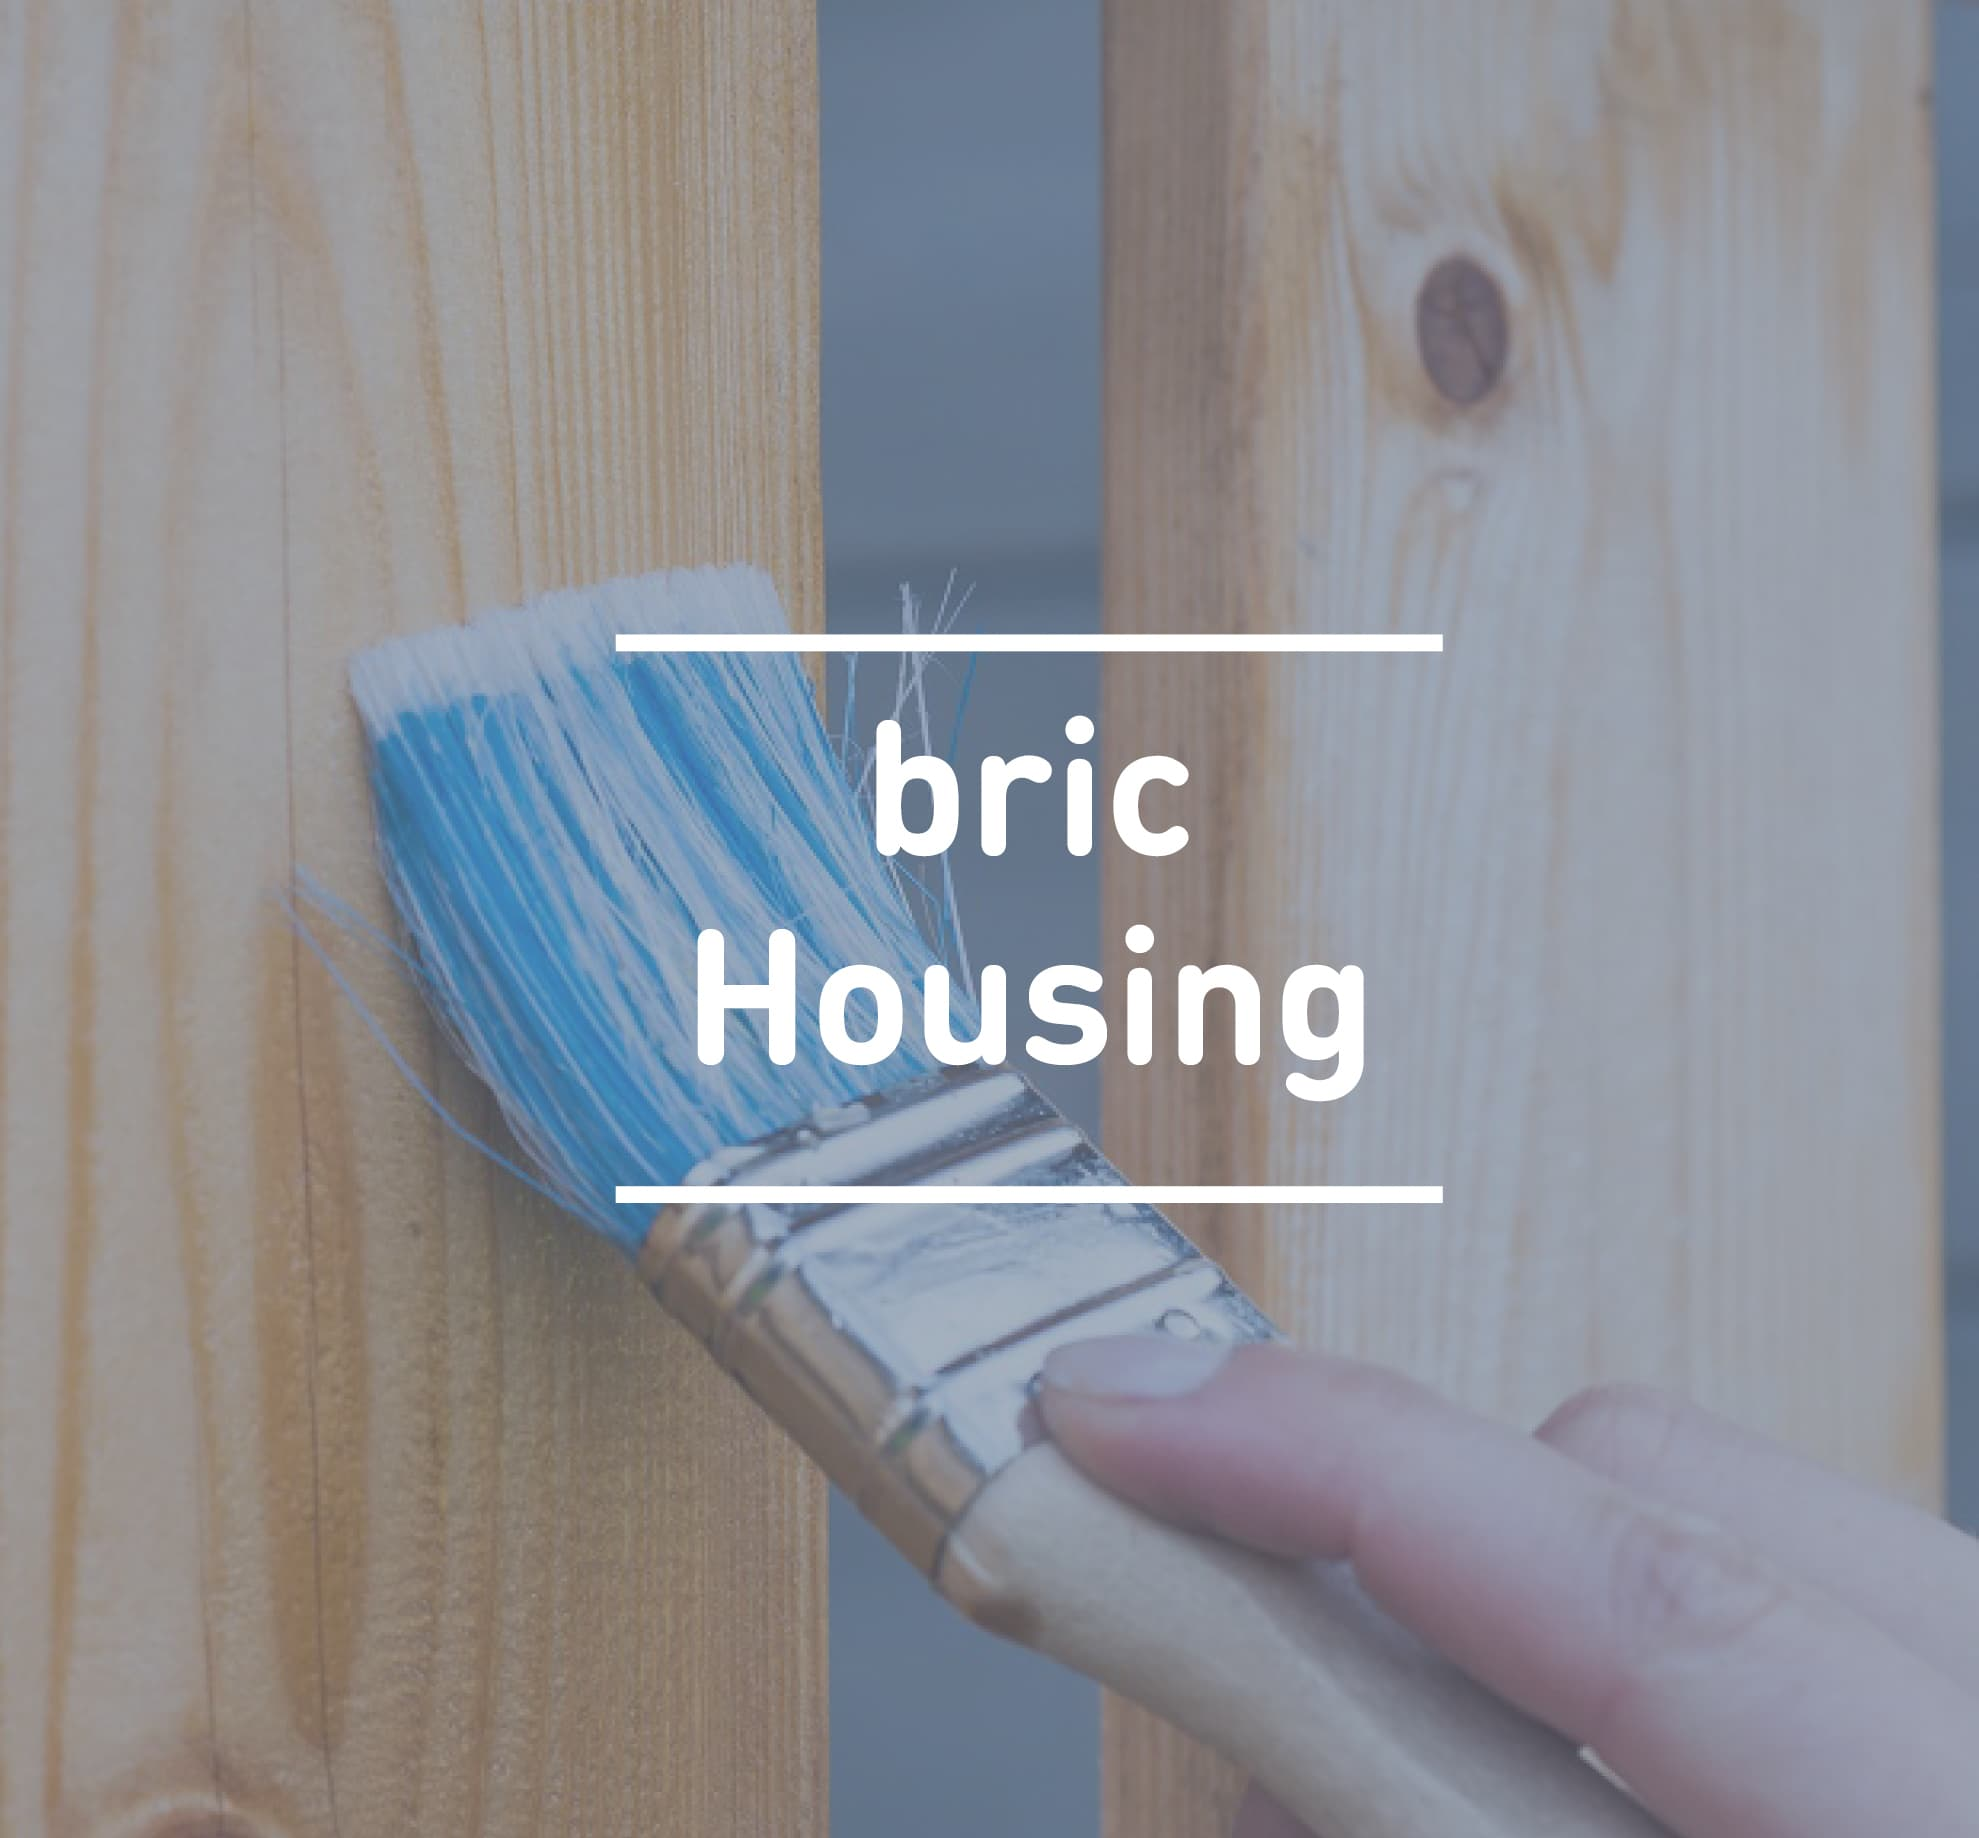 bric Housing | Open Minds